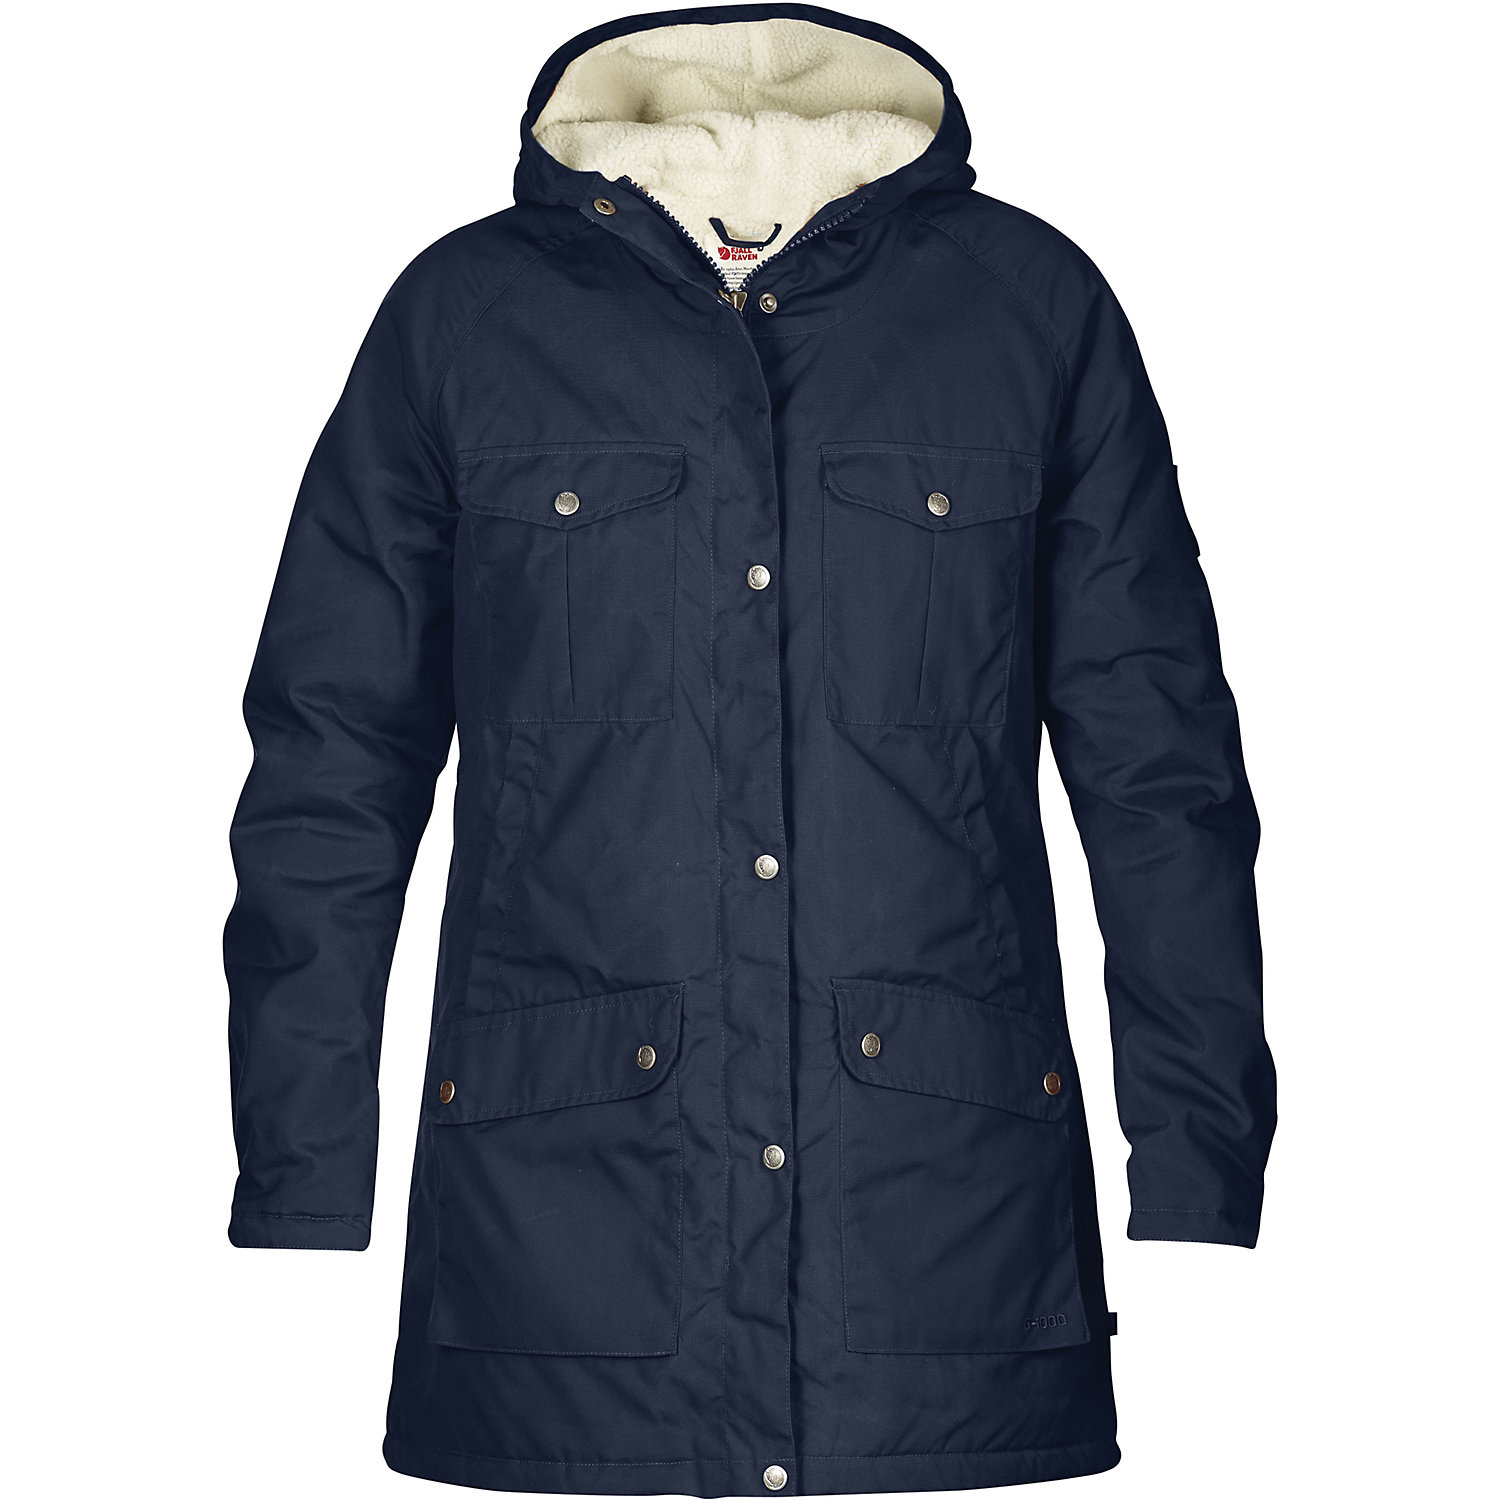 eefb7121 Fjallraven Women's Greenland Winter Parka - Moosejaw